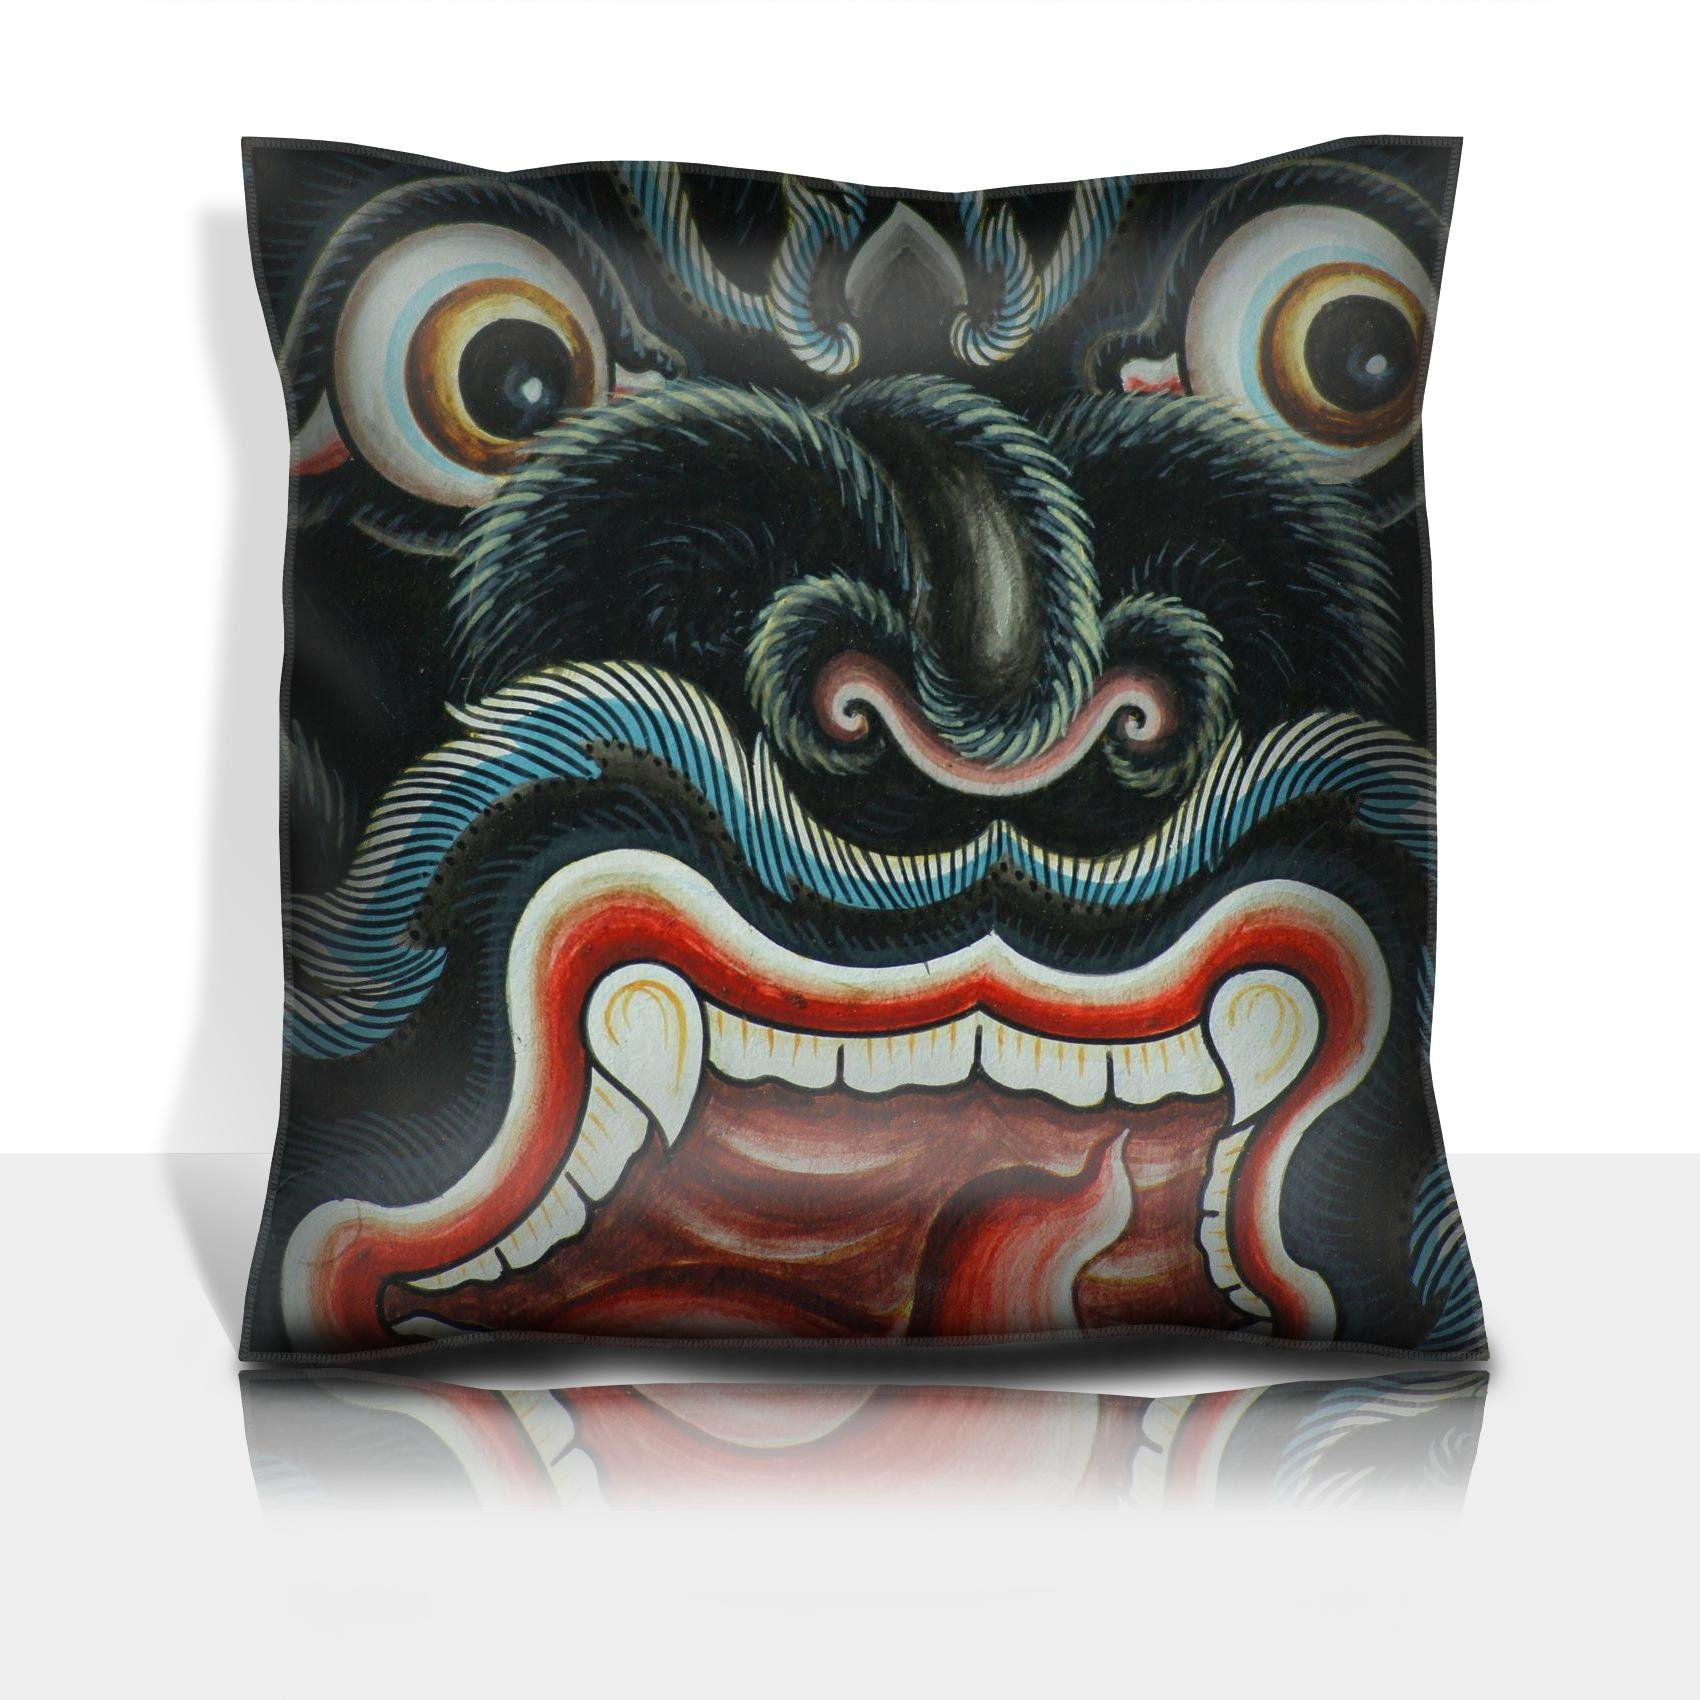 MSD Throw Pillowcase Polyester Satin Comfortable Decorative Soft Pillow Covers Protector sofa 16x16, 1pack IMAGE ID: 14461565 Monkey head Thai art painted on wall in Buddhist temple Bangkok Thai